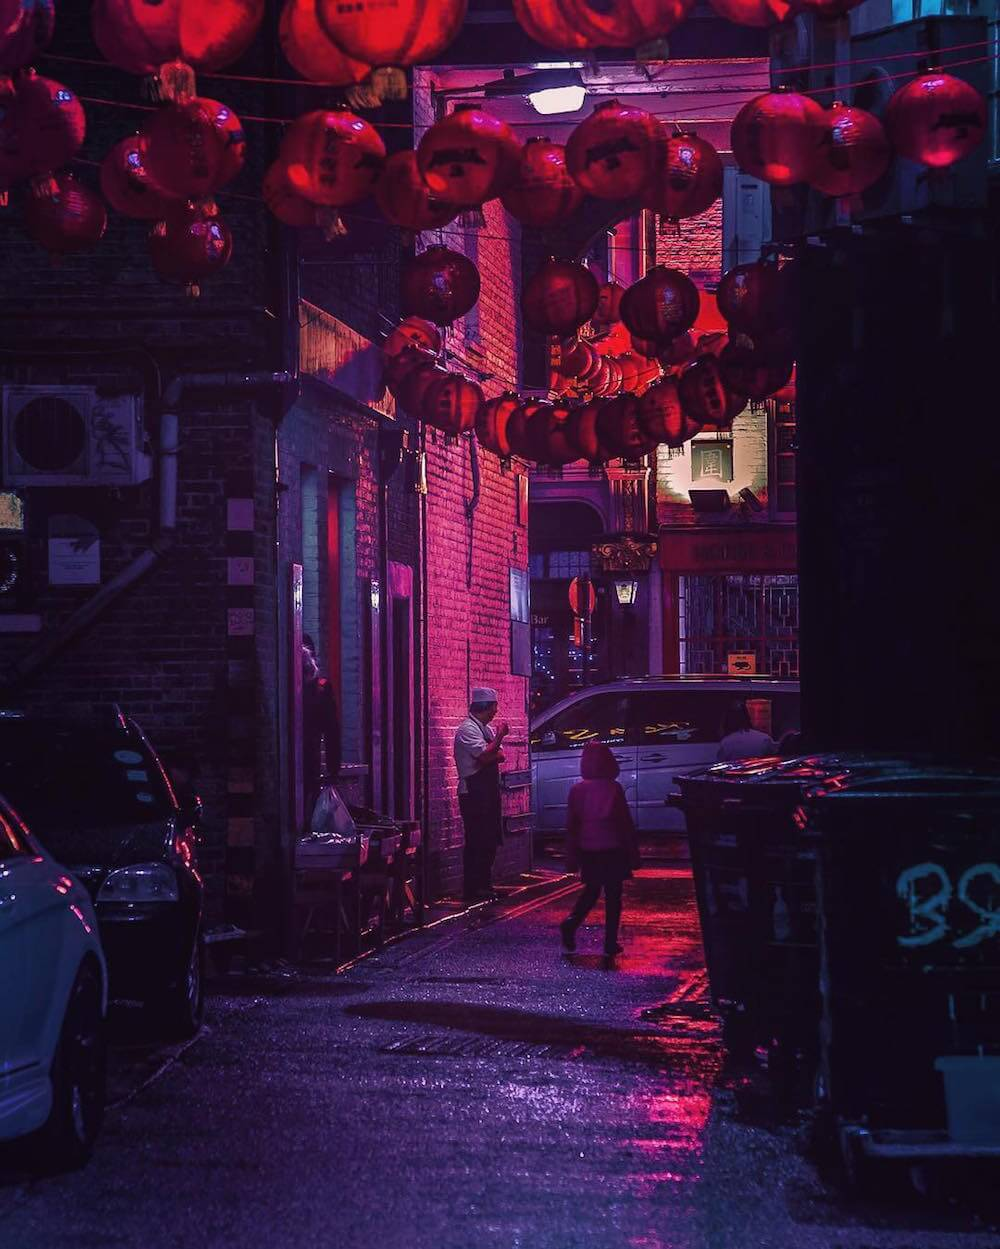 tokyos-night-life-liam-wong-freeyork-7